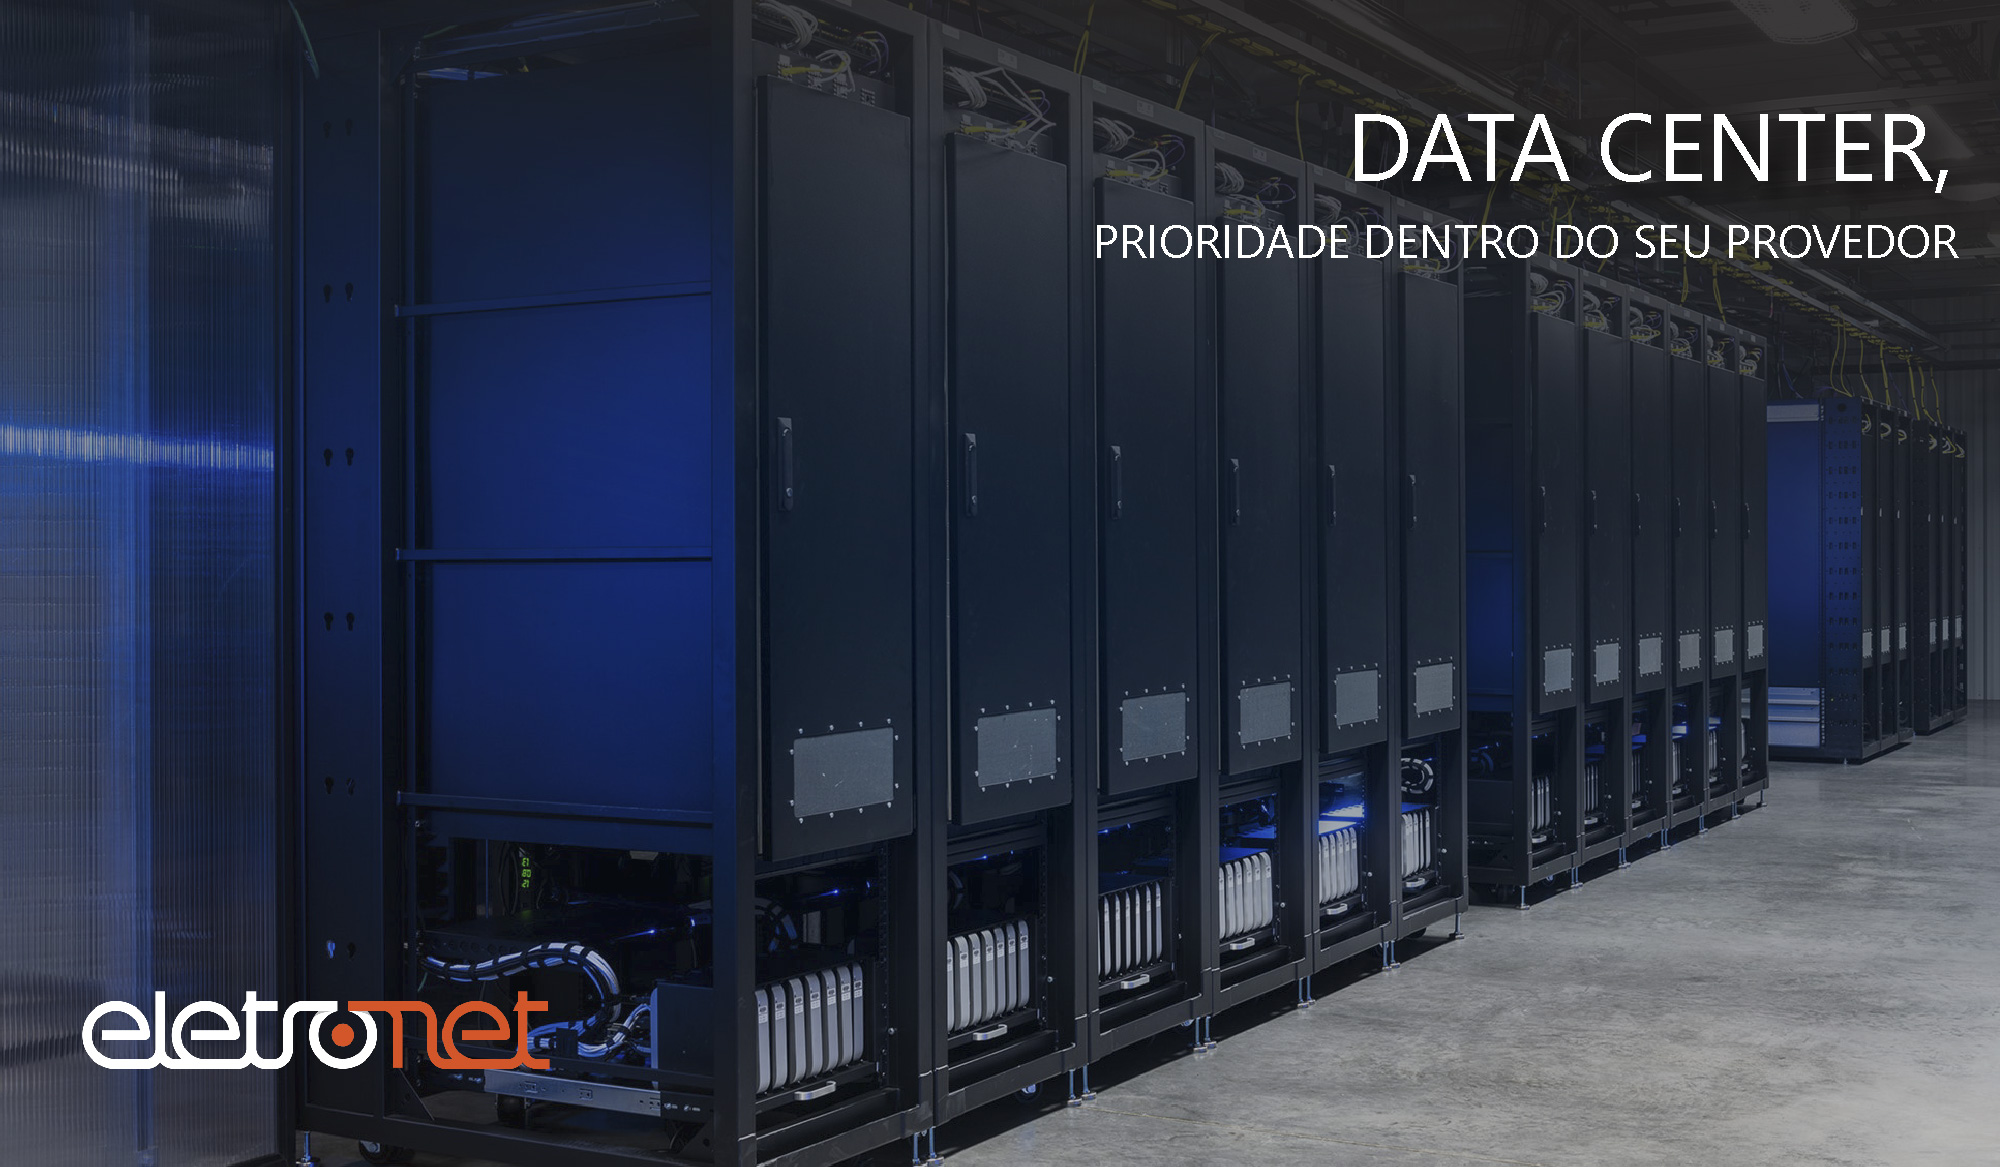 Data center: prioridade dentro do seu provedor